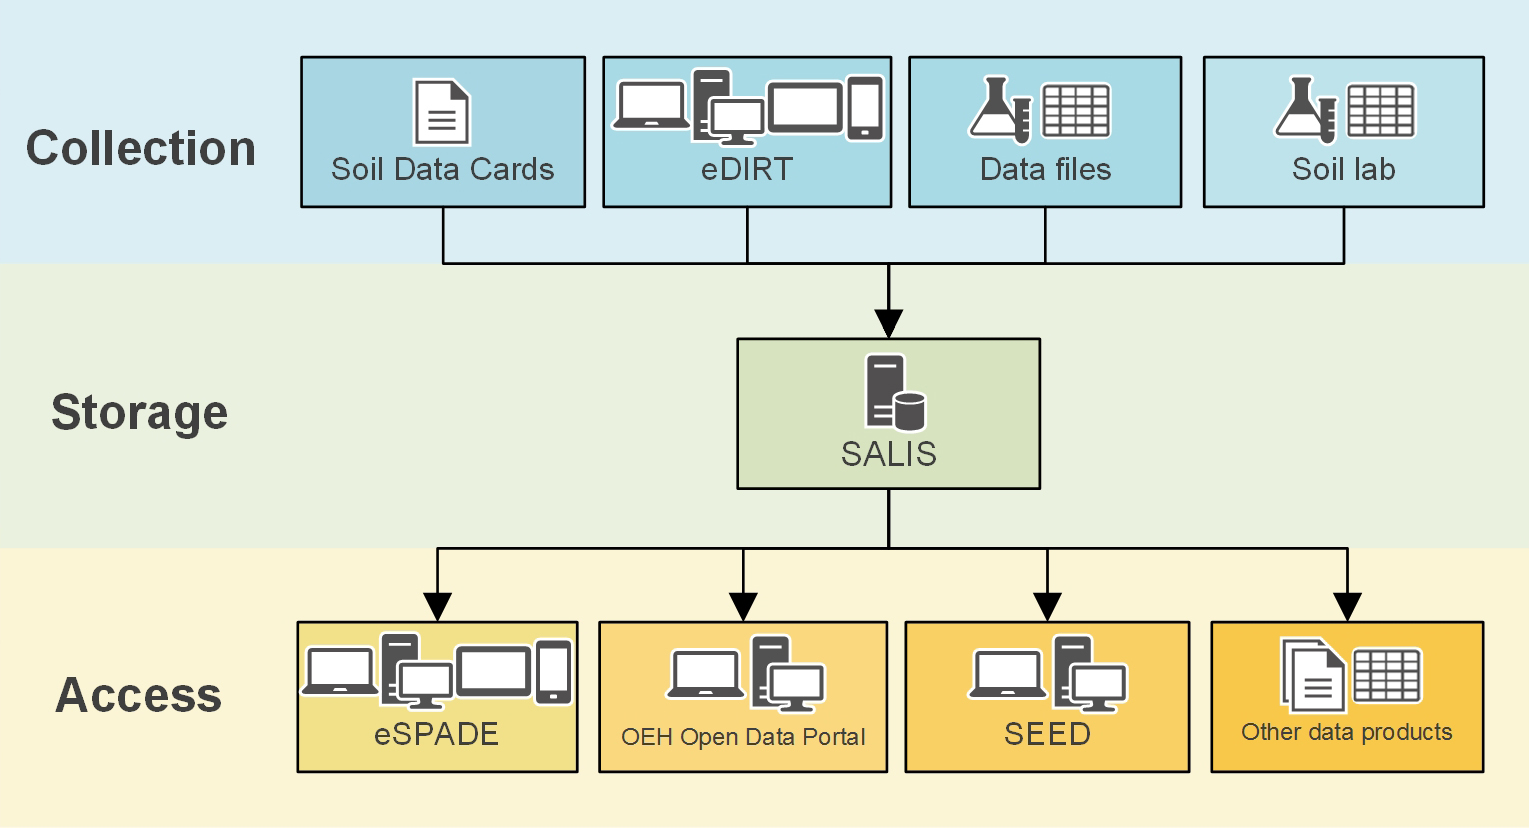 Diagram showing relationship between SALIS, eDIRT, eSPADE, OEH Open Data Portal and other applications and databases